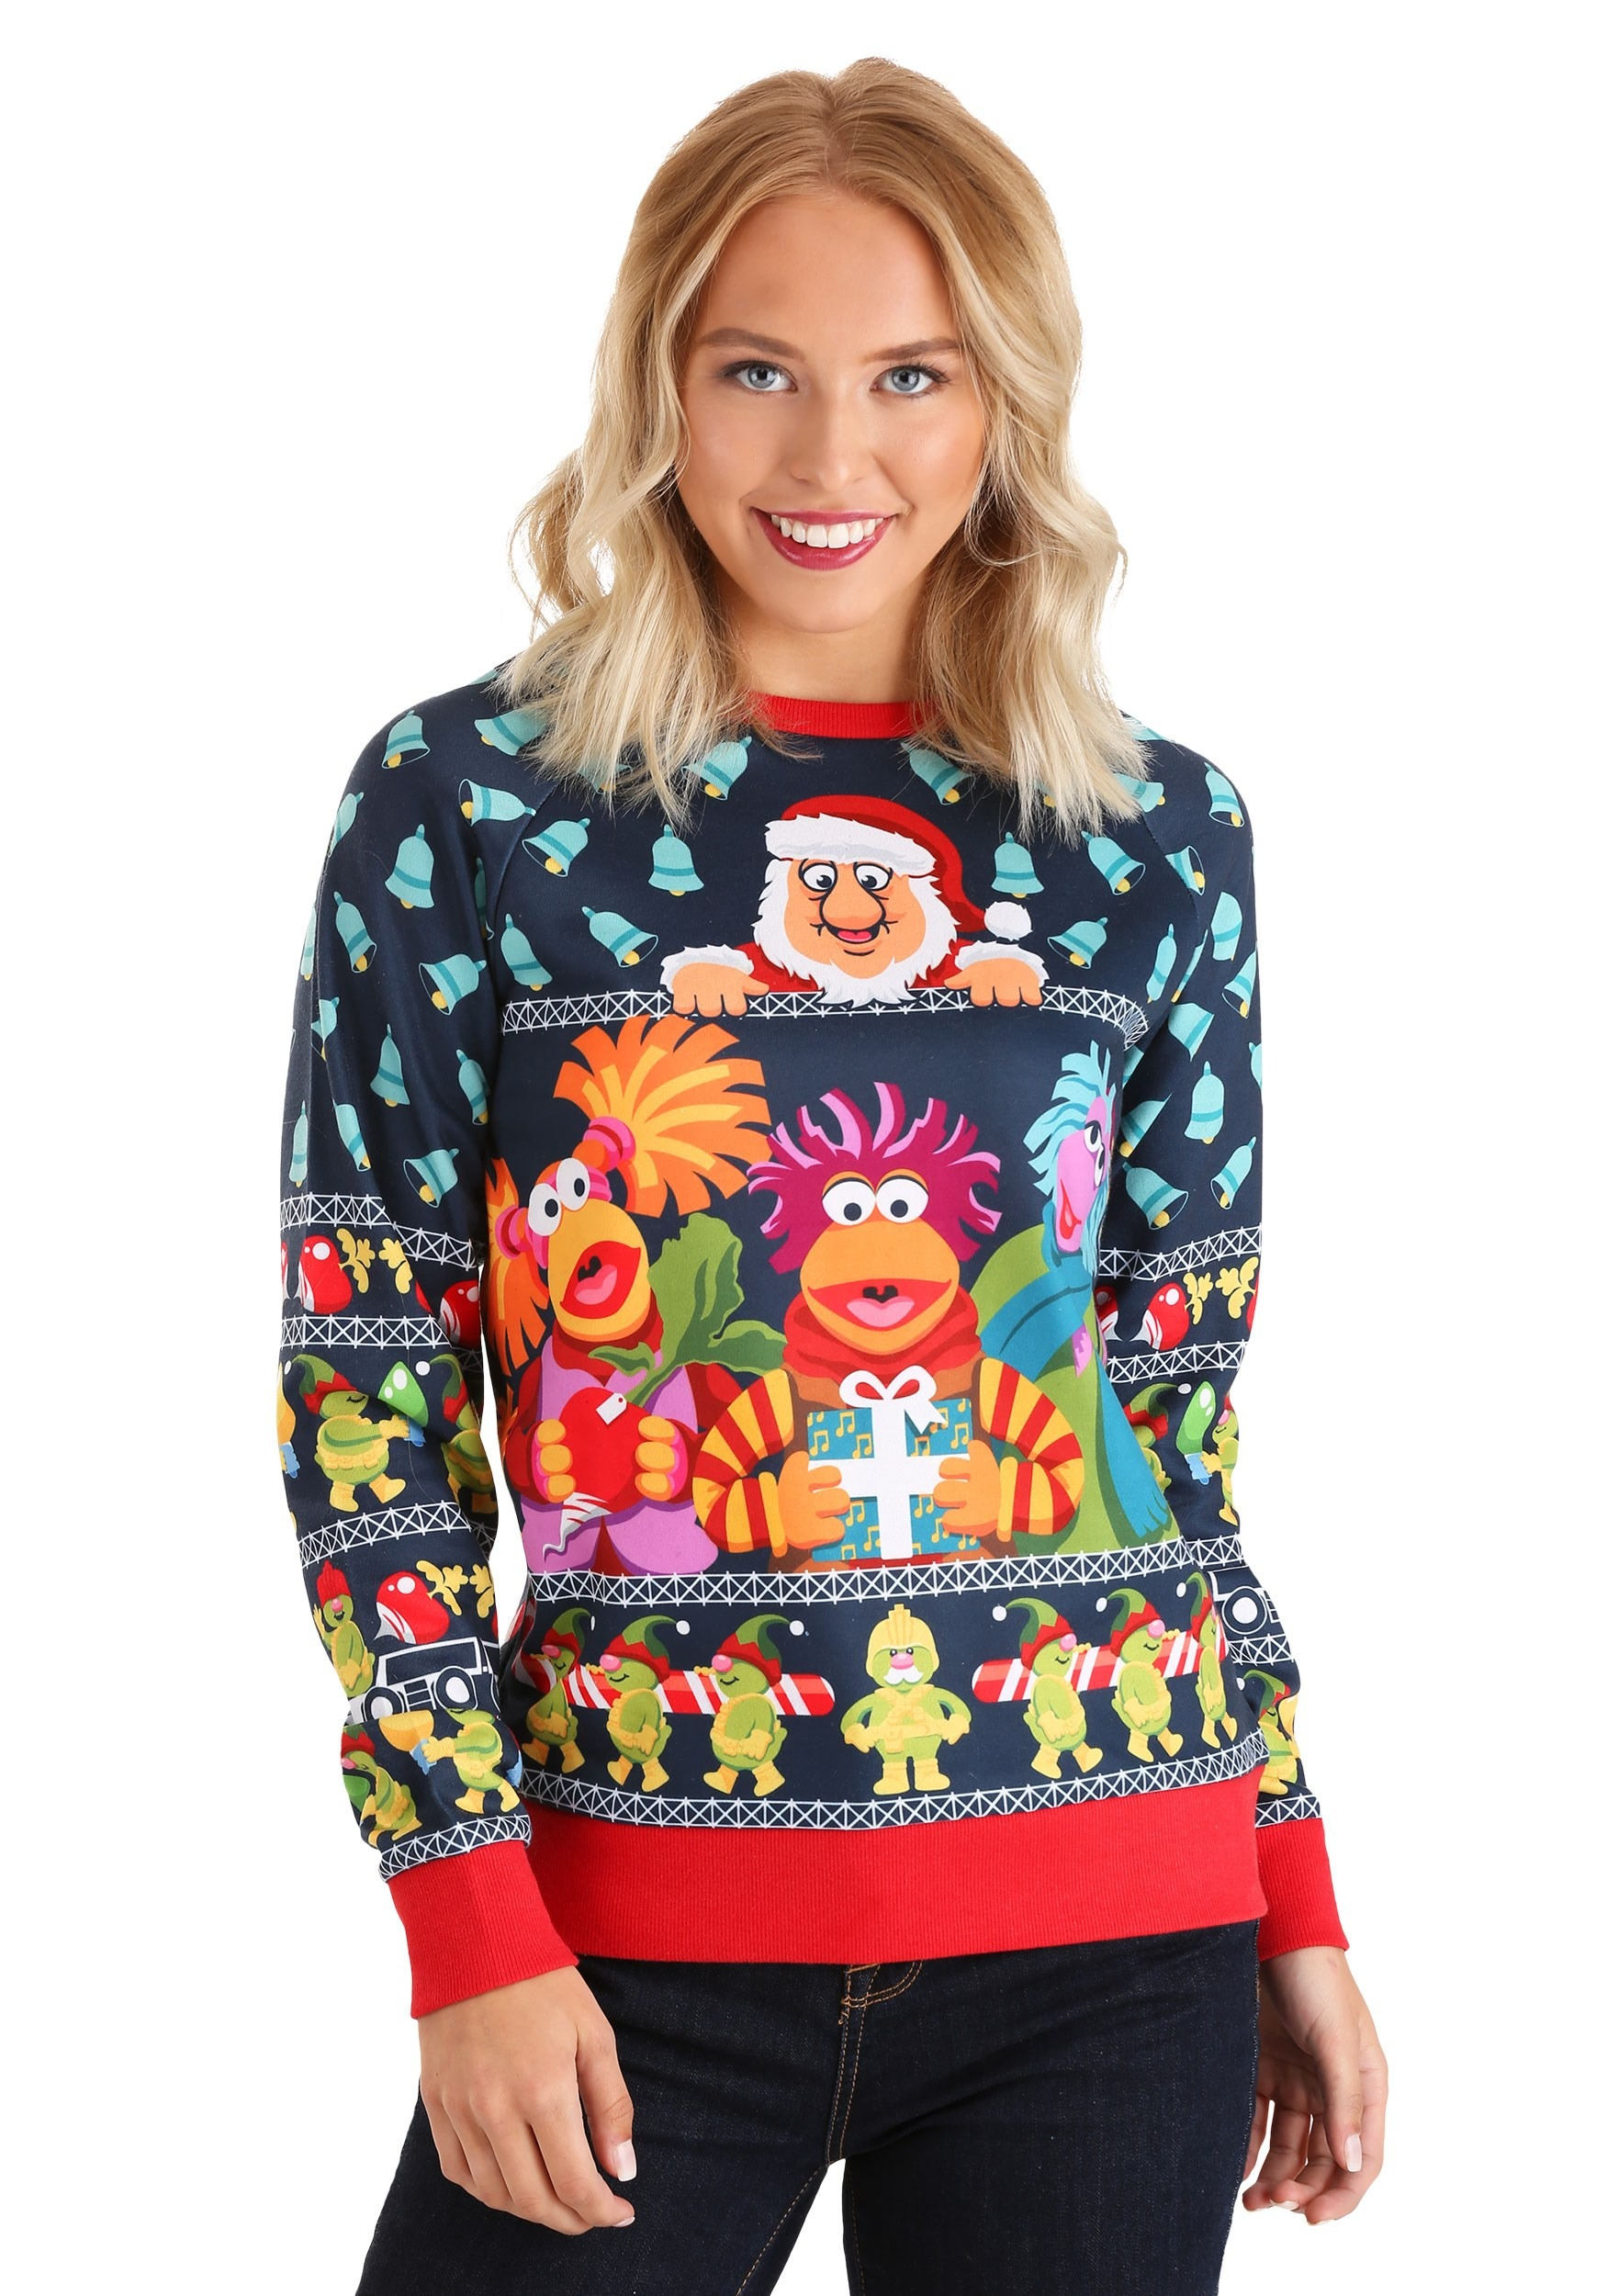 Fraggle Rock Sublimated Ugly Christmas Sweater for Adults